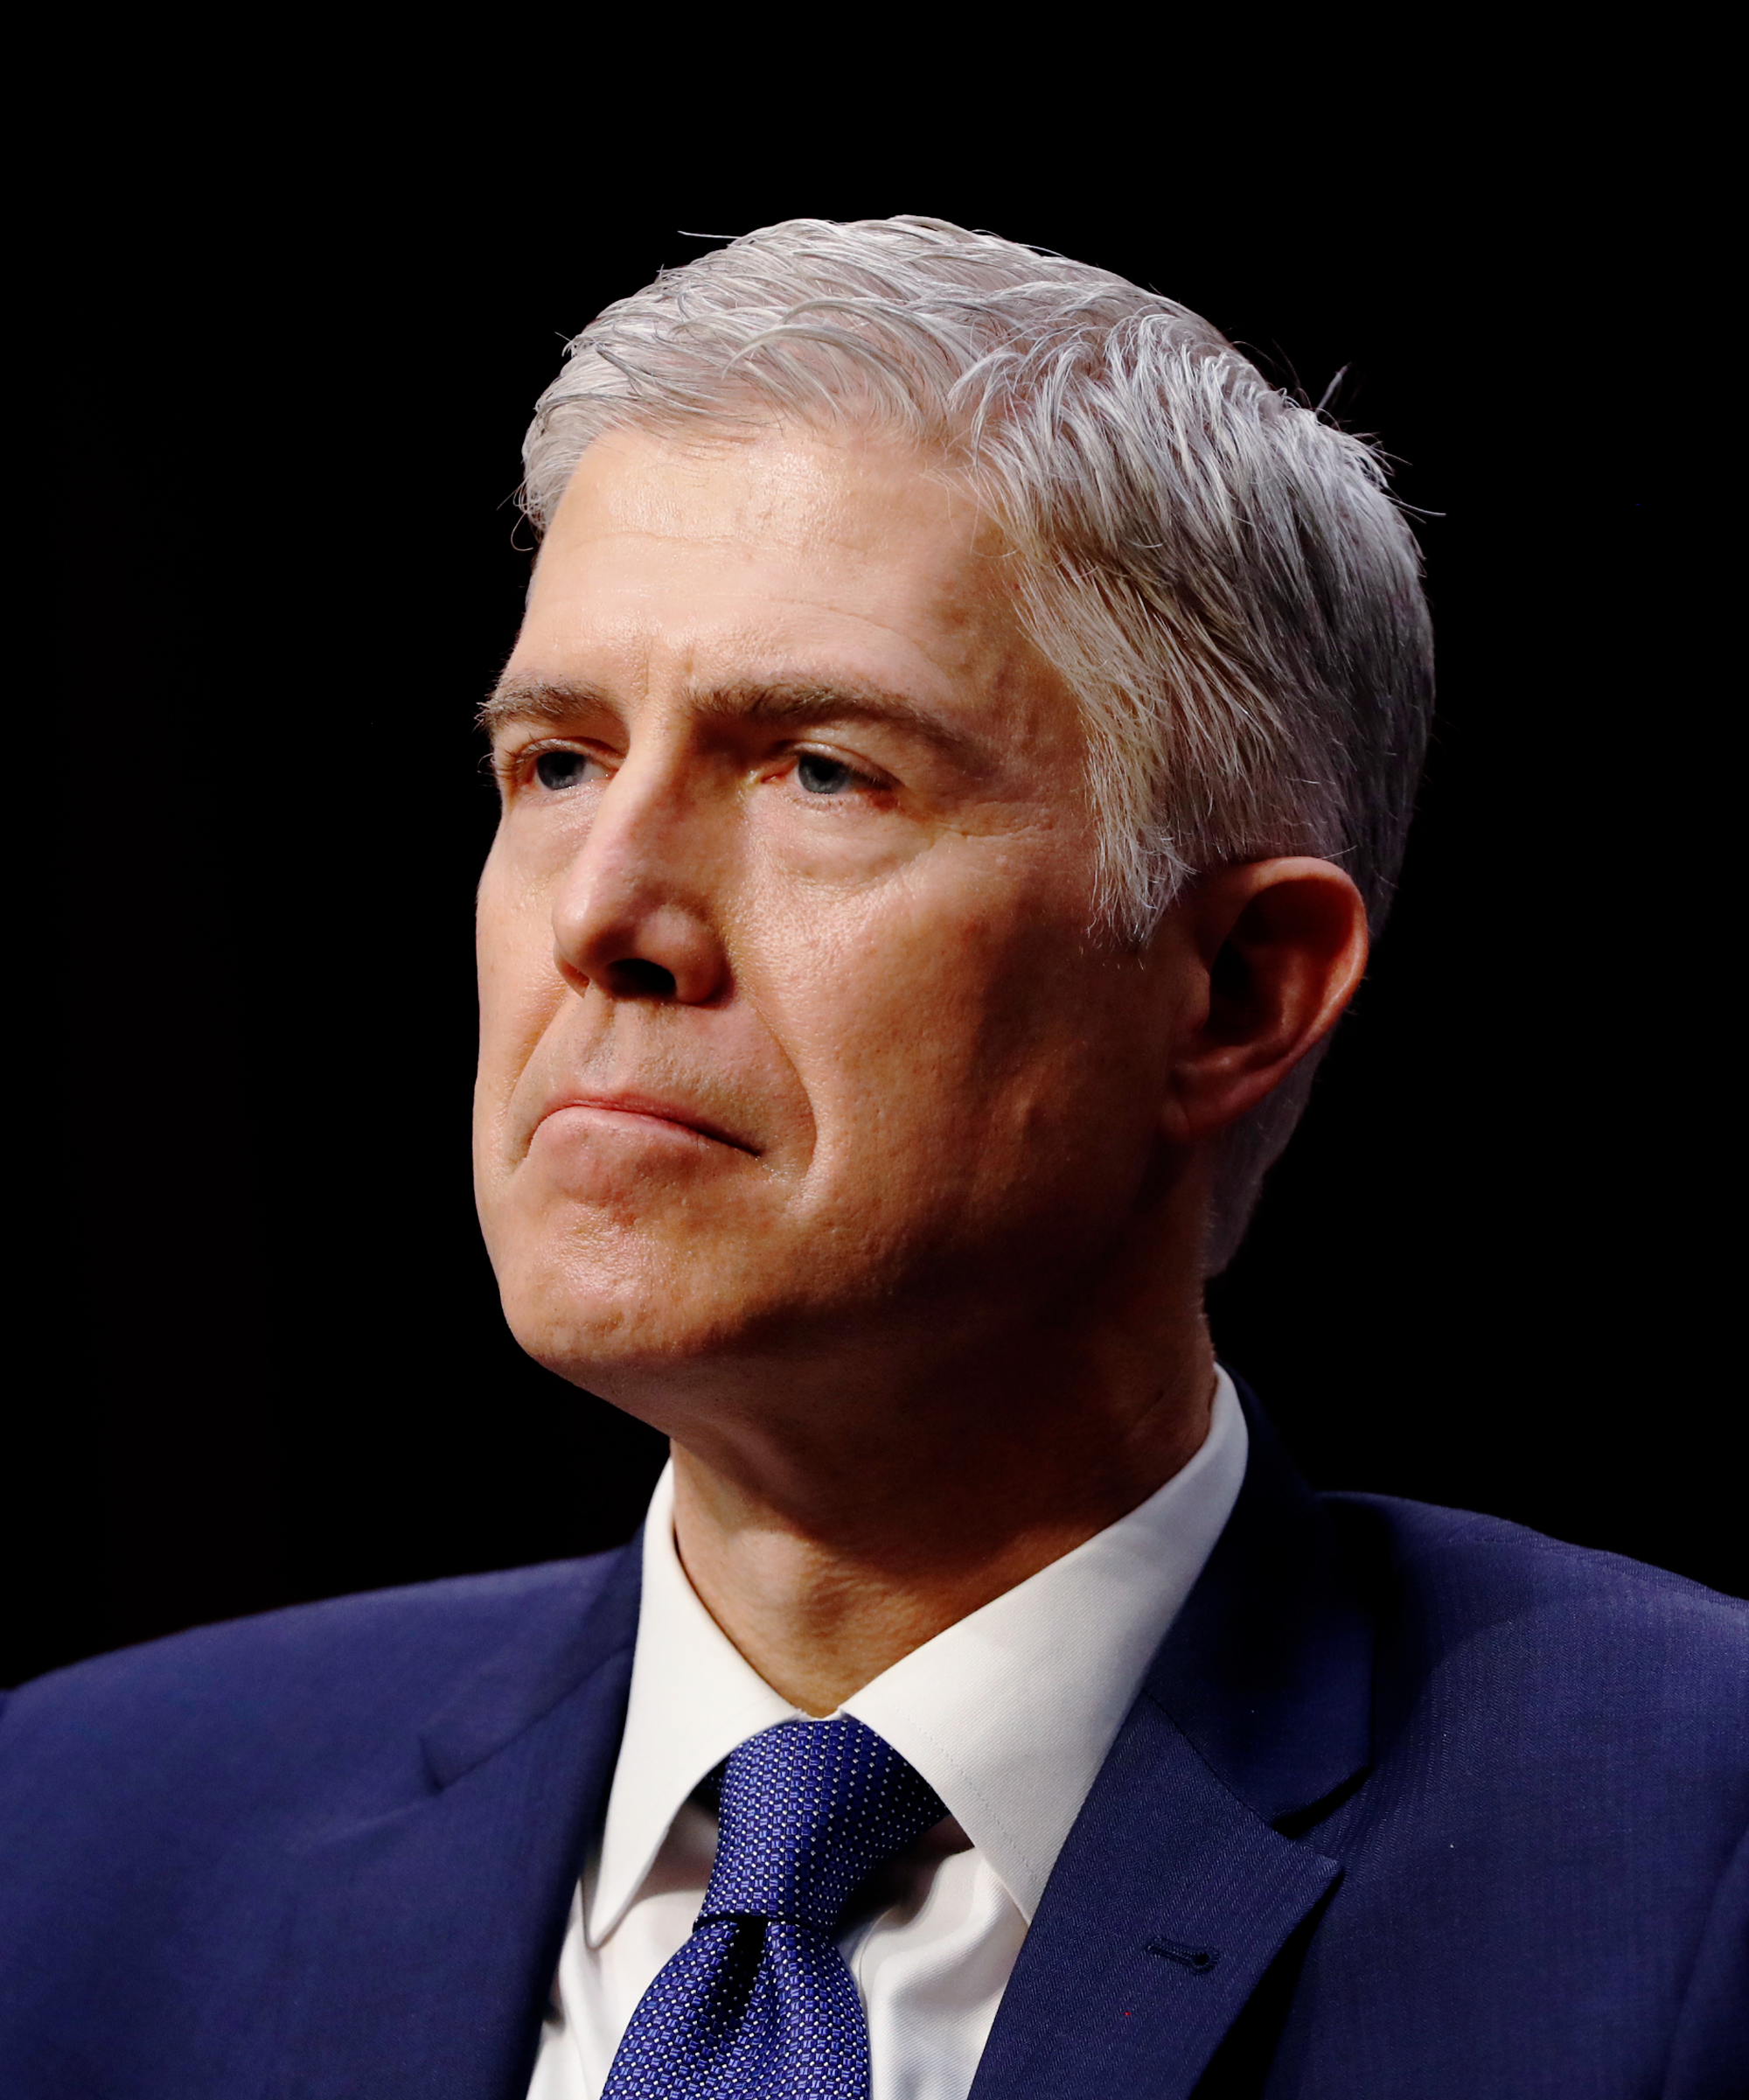 Neil Gorsuch receives enough votes to be confirmed by Senate